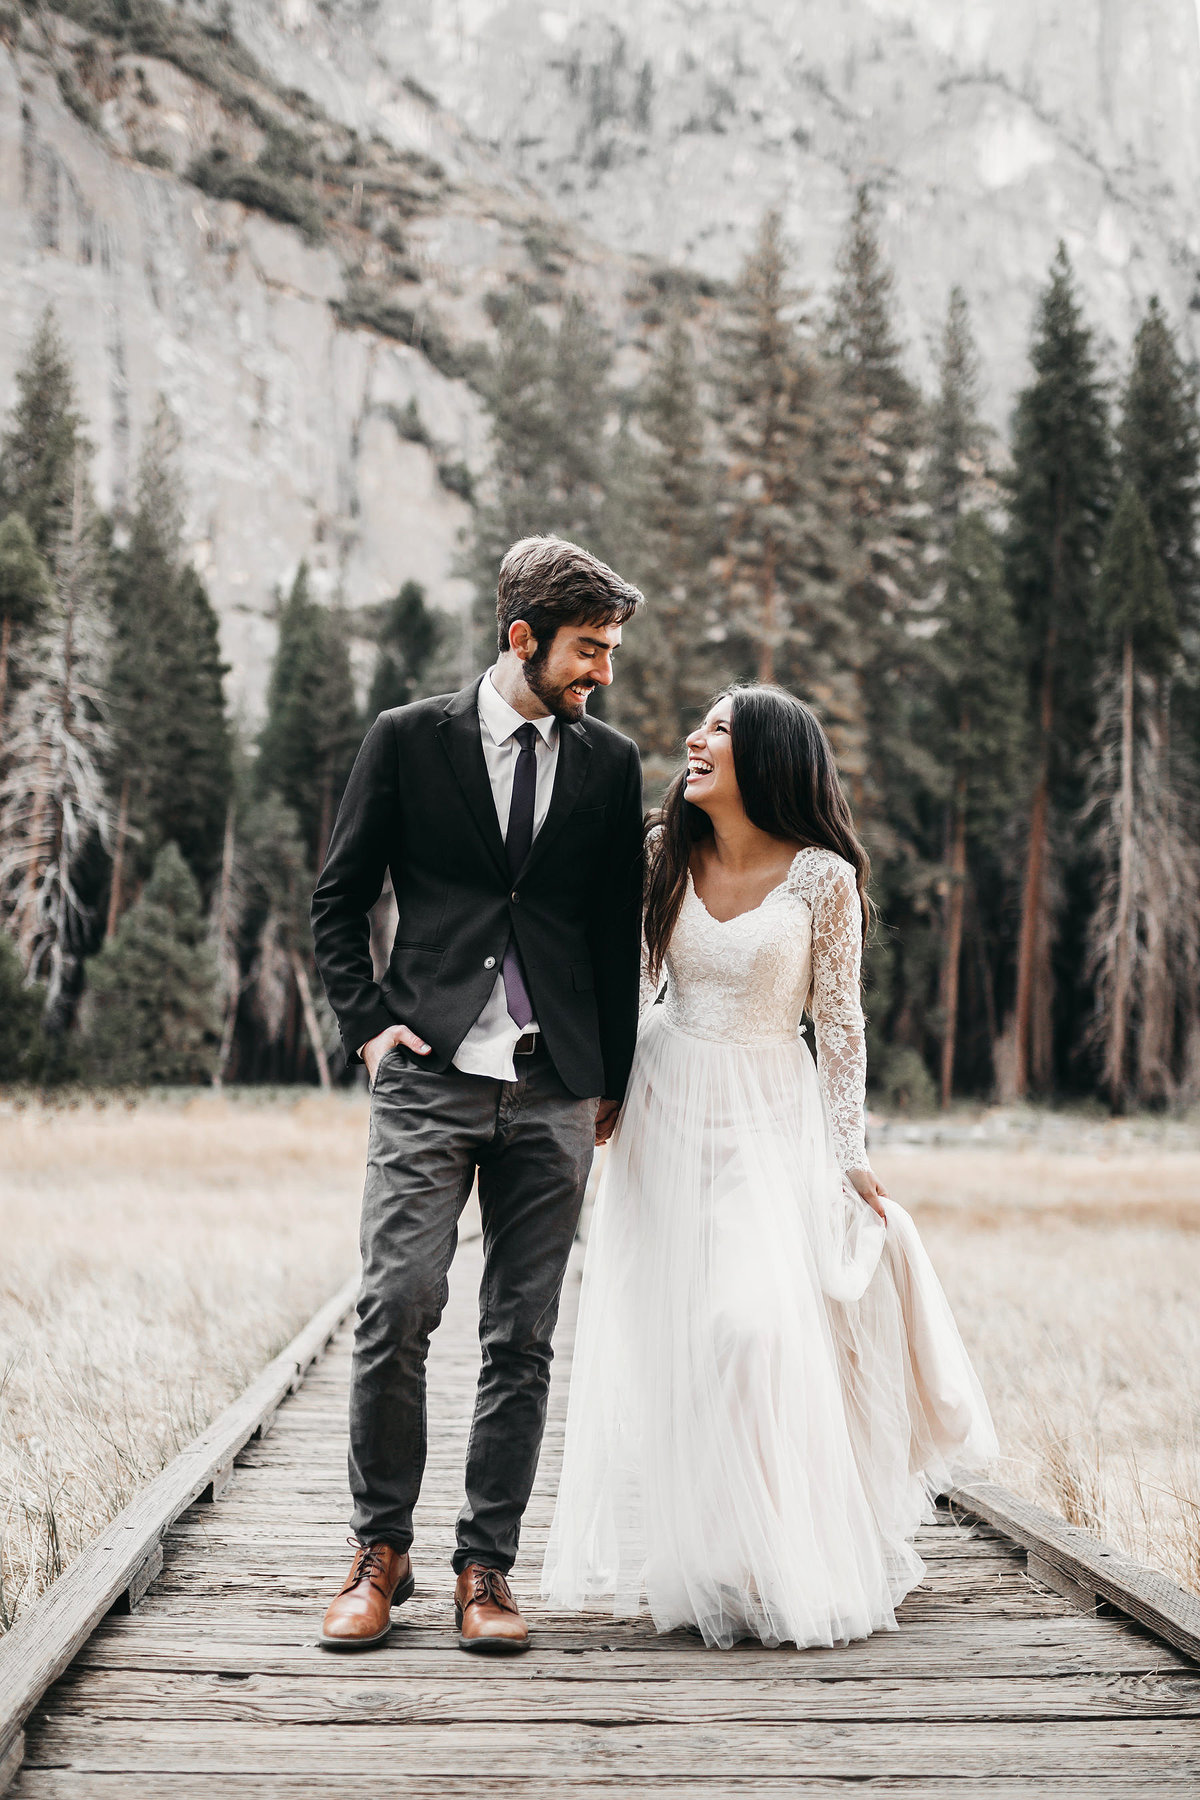 athena-and-camron-how-to-elope-in-yosemite-wedding-wooden-walkways-amy-kyle-4